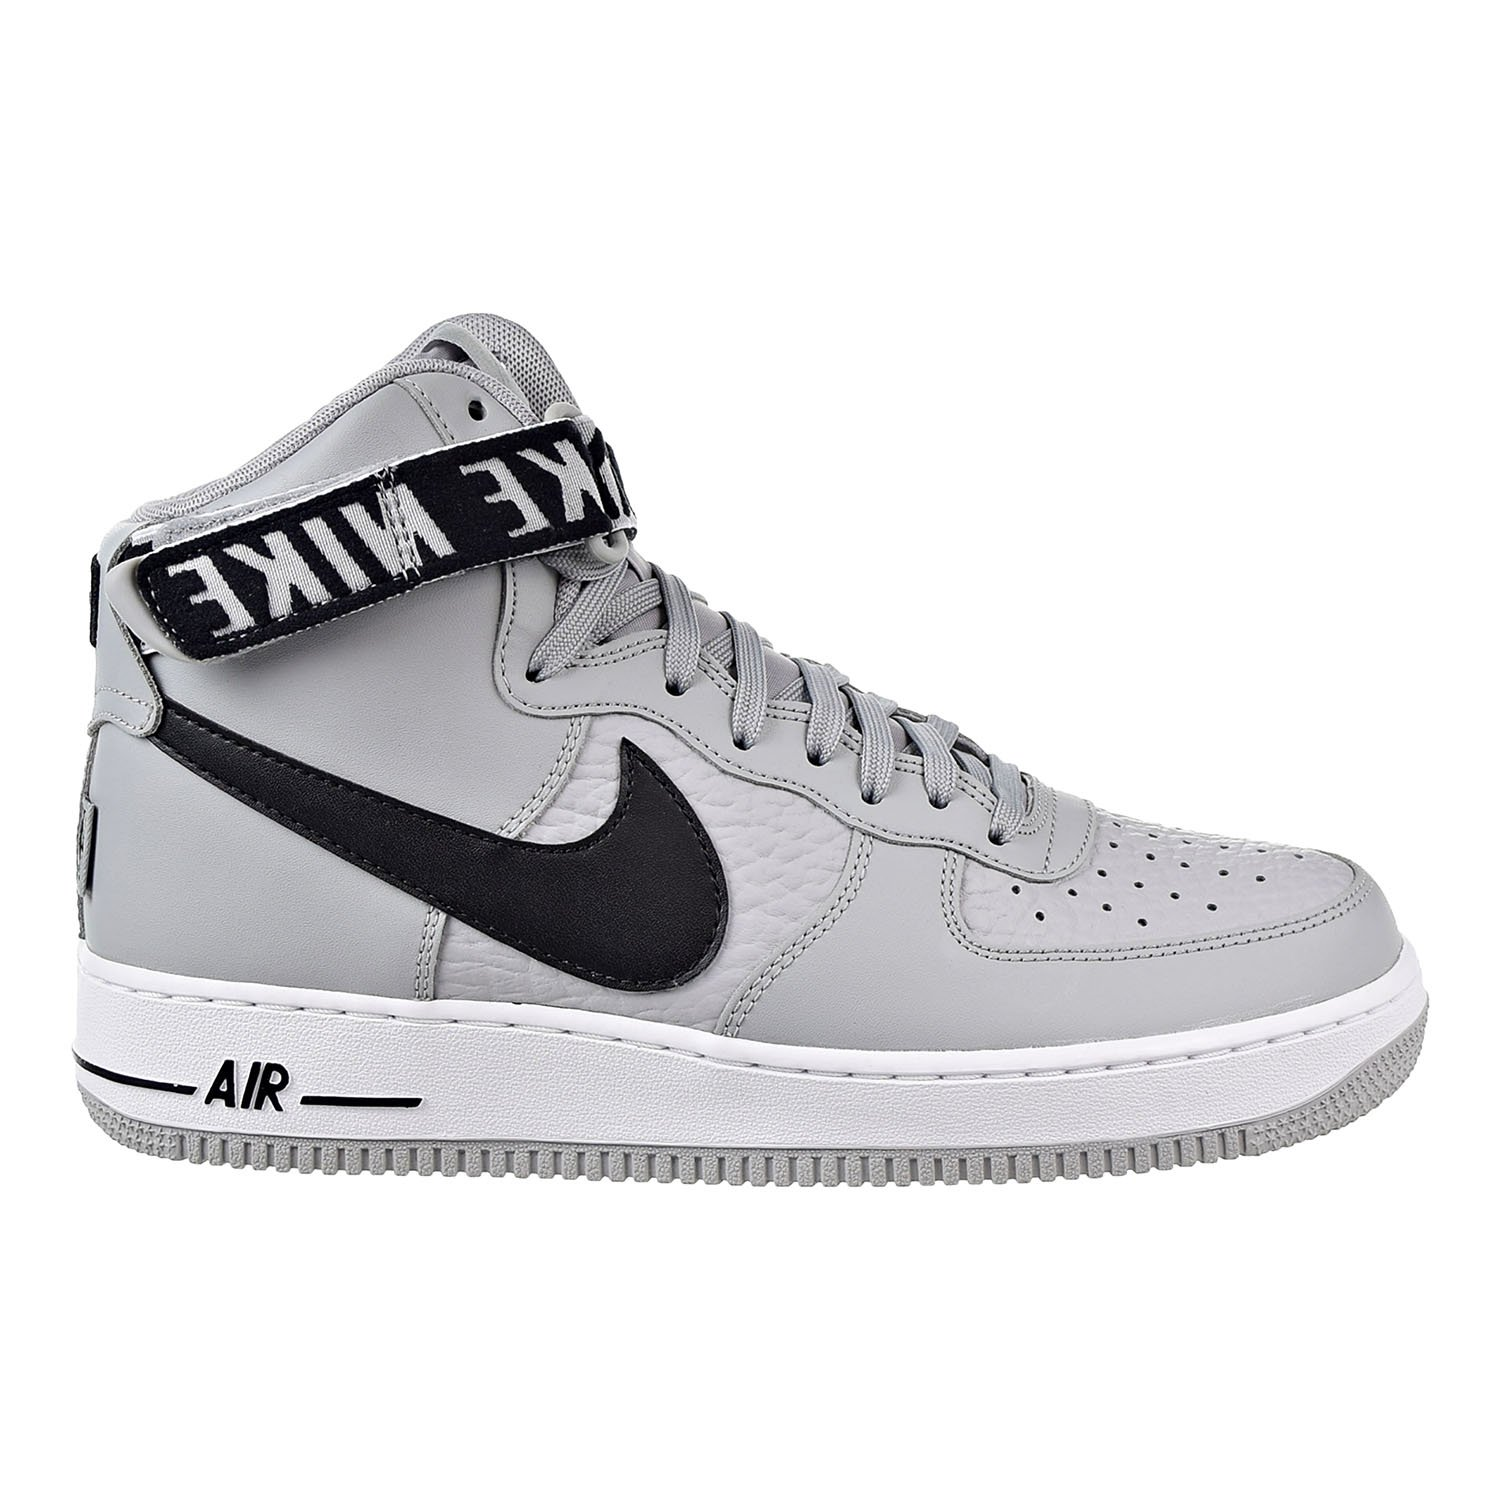 Nike Air Force 1 High '07'' NBA Pack Men's Shoes Silver/Black/White 315121-044 (13 D(M) US)